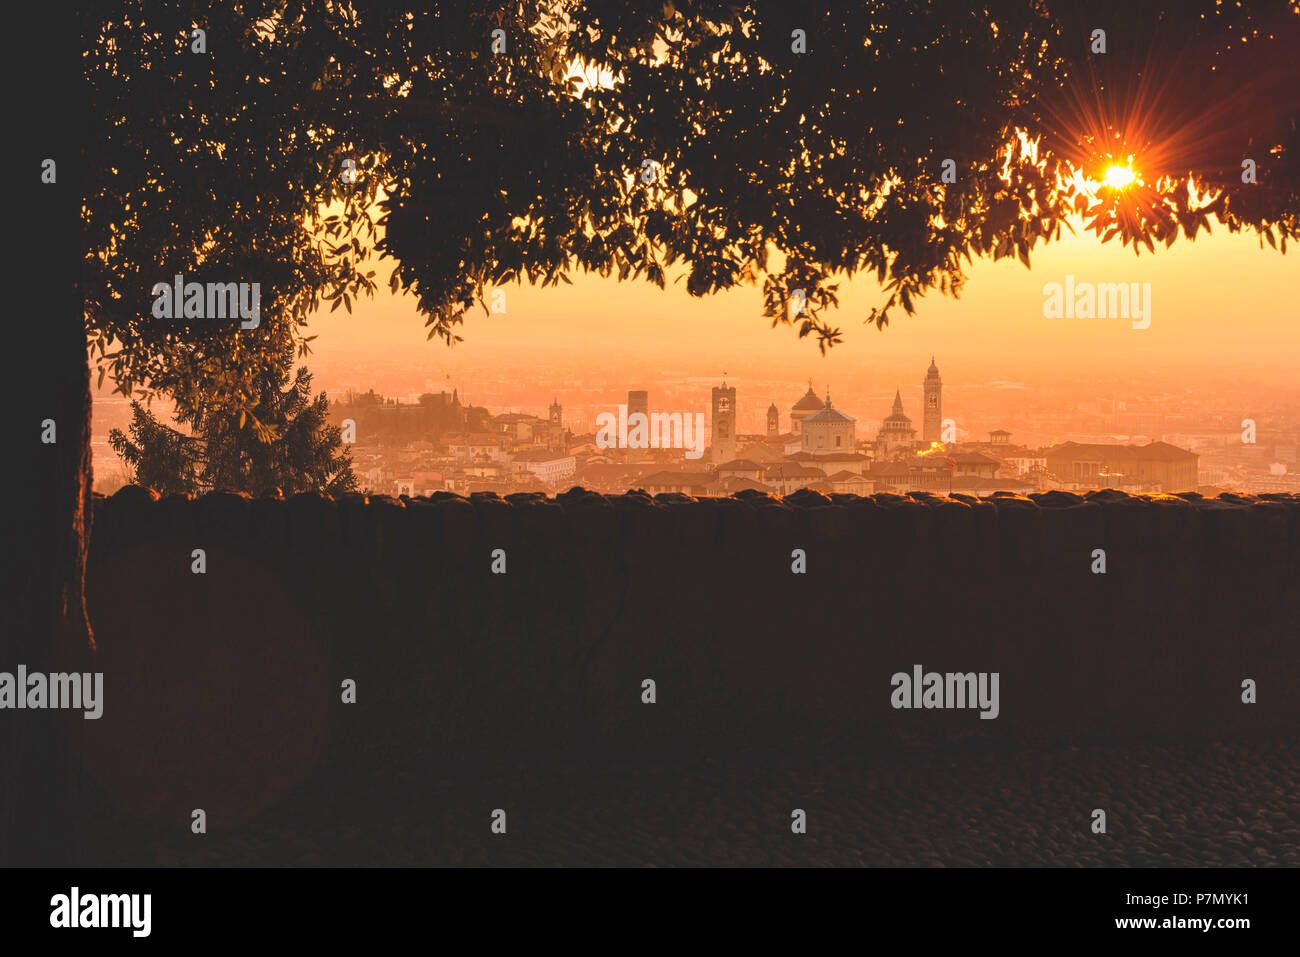 Sunrise in Bergamo Upper Town, città alta, Bergamo City, Province of Bergamo, Lombardy district, Italy, Europe - Stock Image